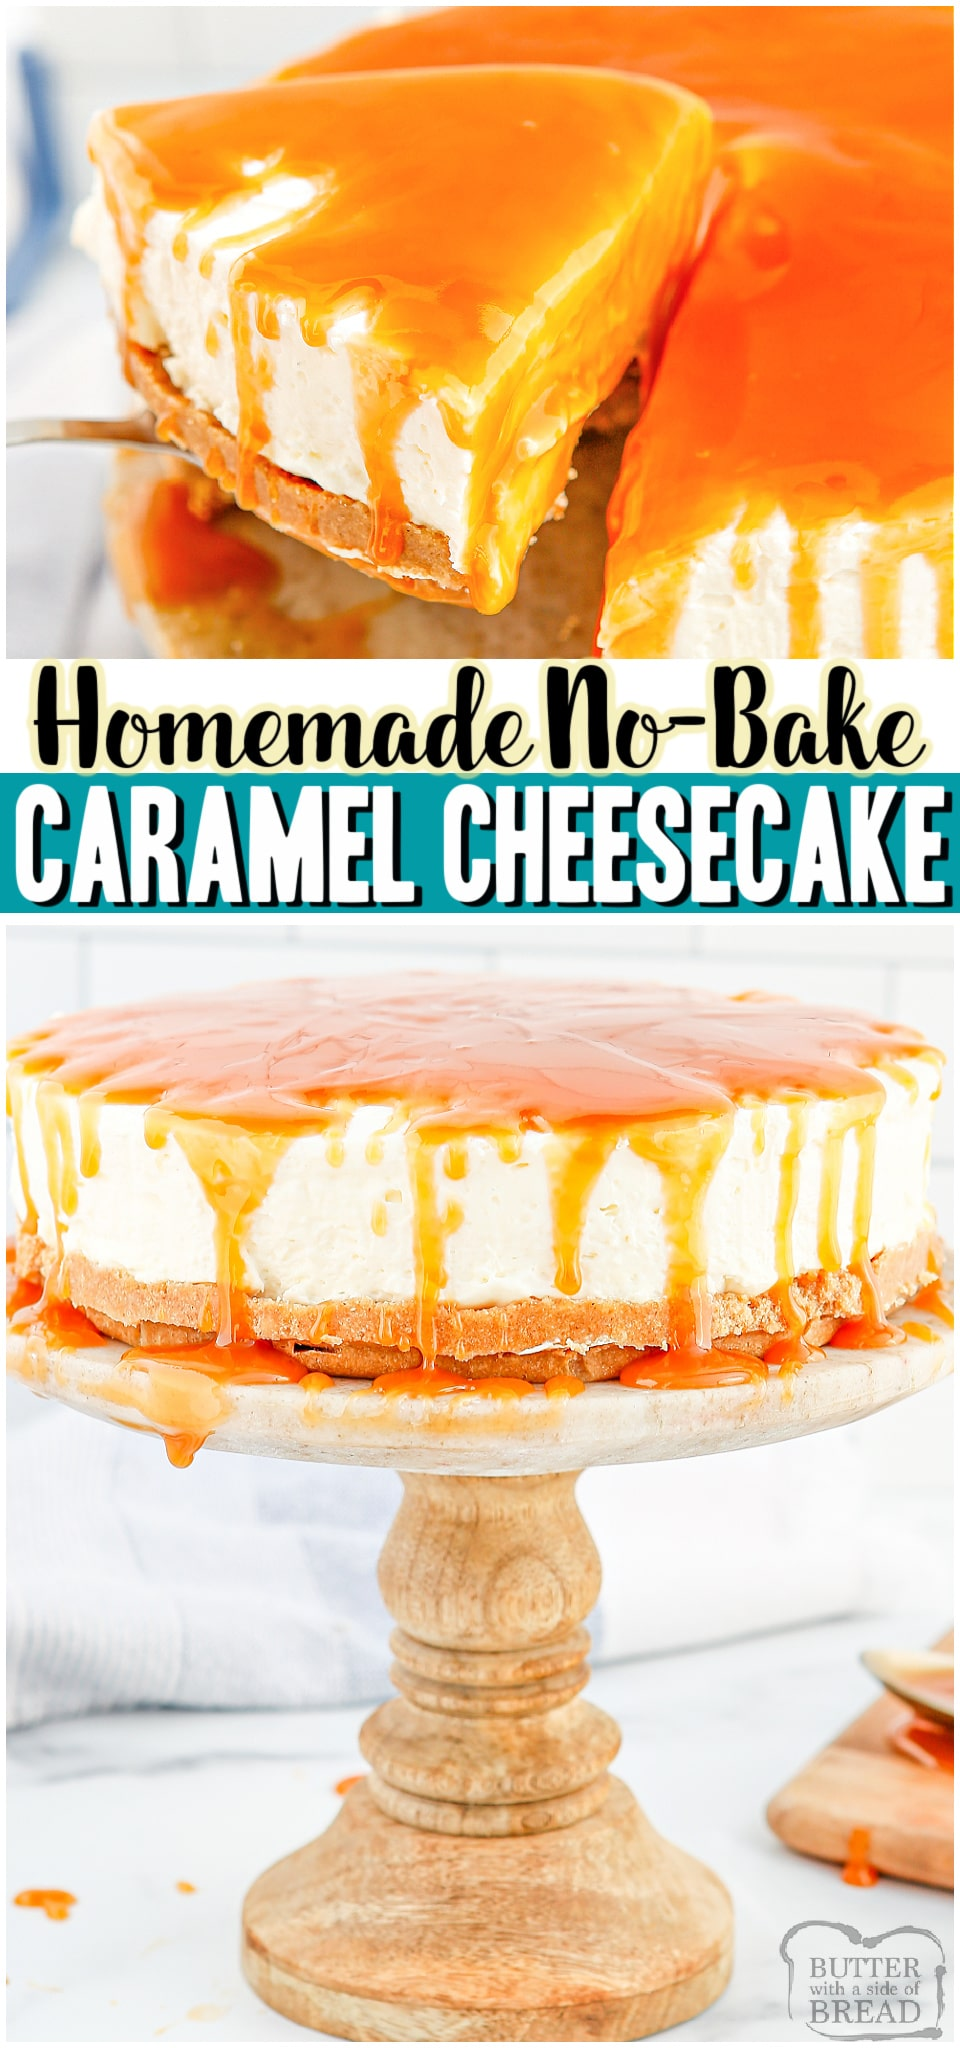 NO-BAKE CARAMEL CHEESECAKEis a deliciously creamy cheesecake recipe topped with a simple homemade caramel sauce. Easy no-bake cheesecake with 3 ingredient caramel that everyone loves! #cheesecake #nobake #homemade #caramel #dessert #easyrecipe from BUTTER WITH A SIDE OF BREAD